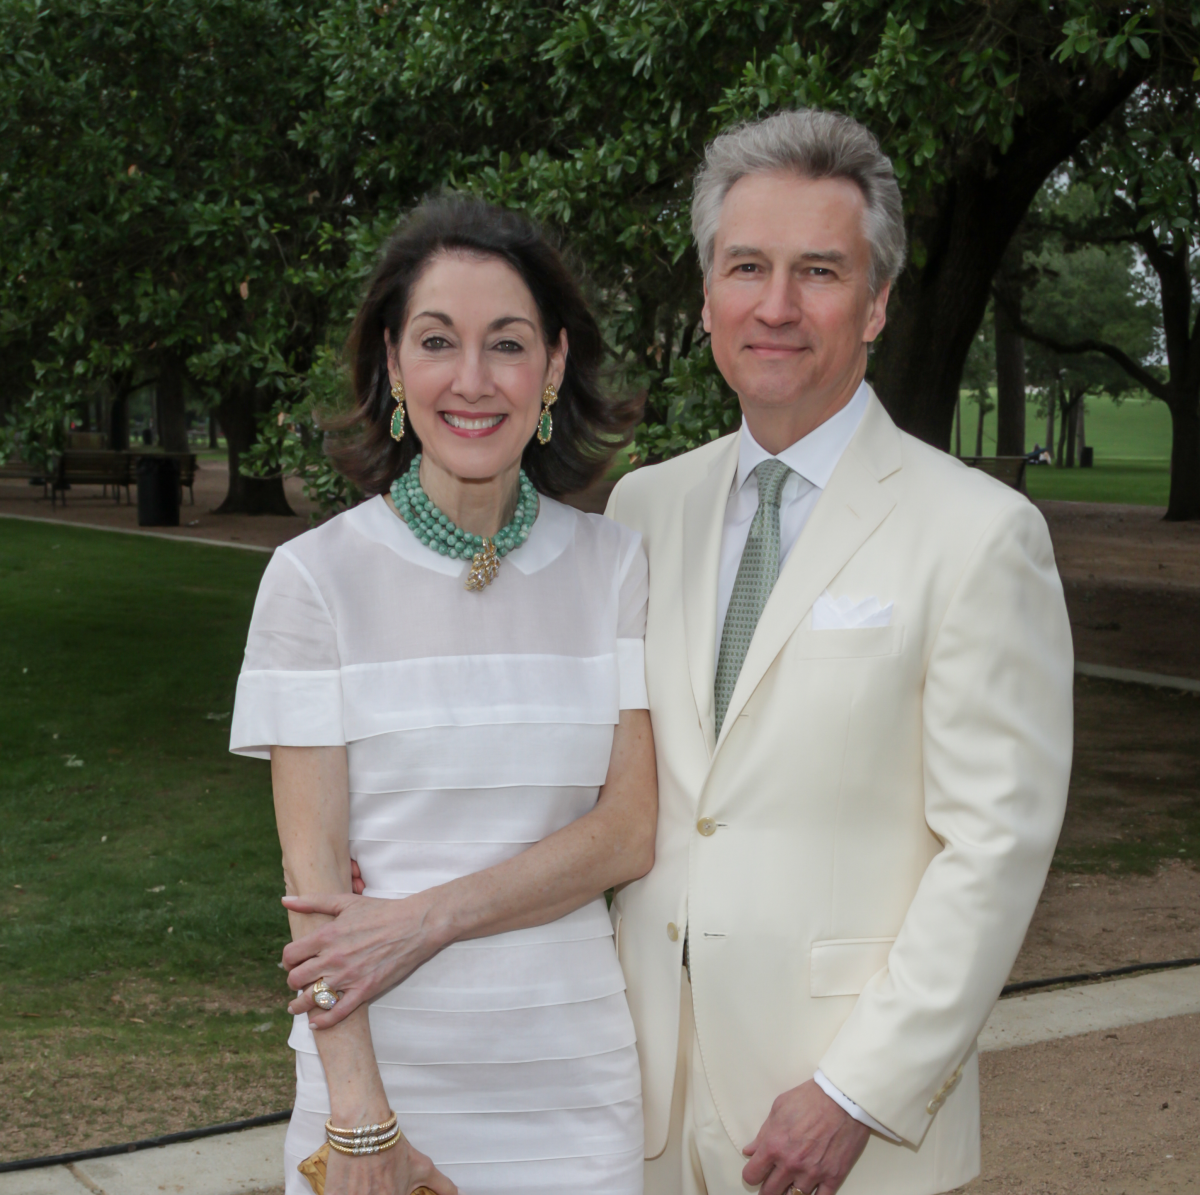 Hermann Park Evening in the Park 5/16, Susie Criner, Sanford Criner